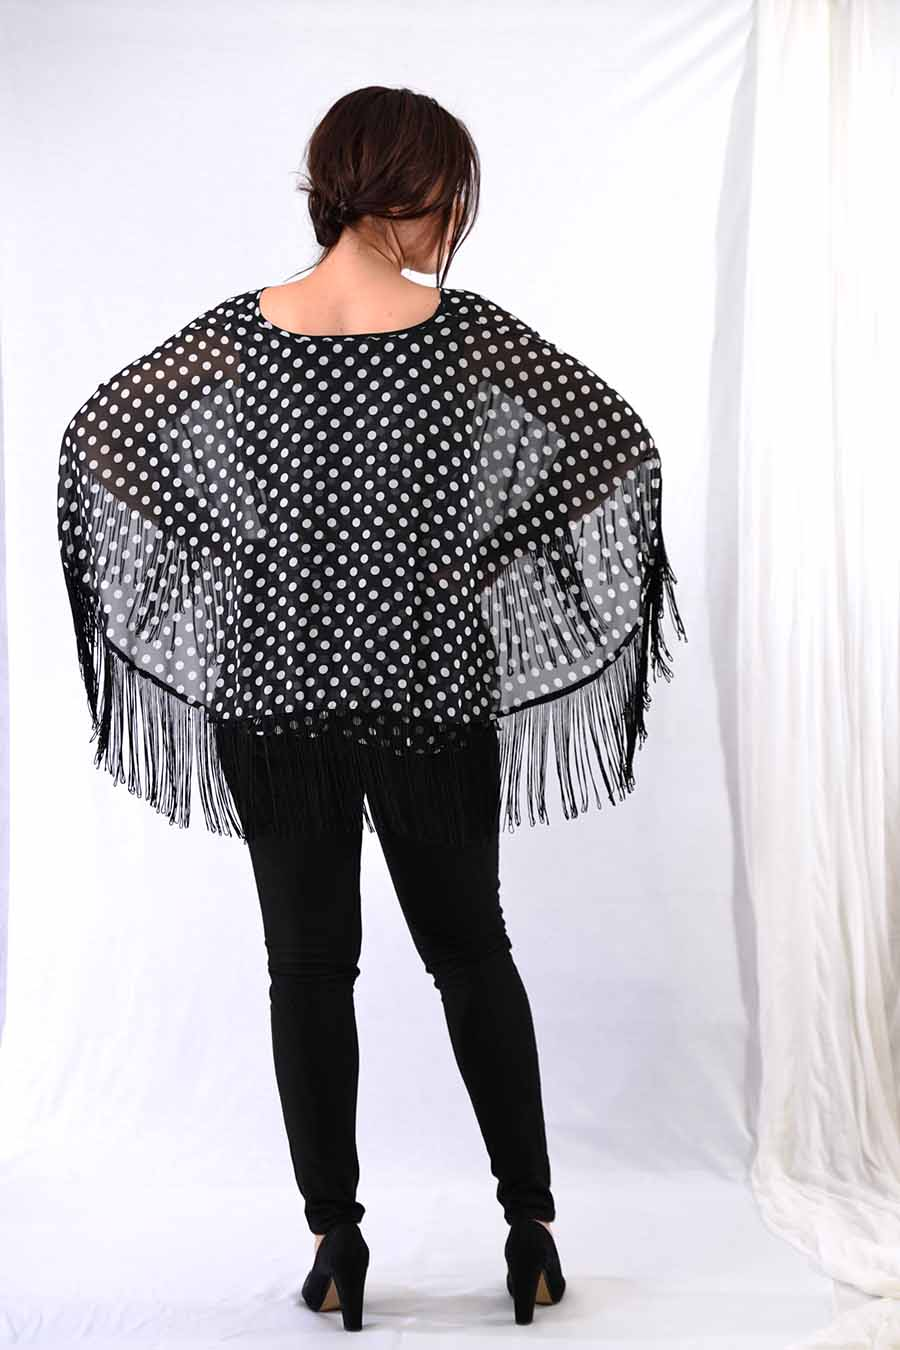 Tunic Blouse with fringes and polka dot print from back